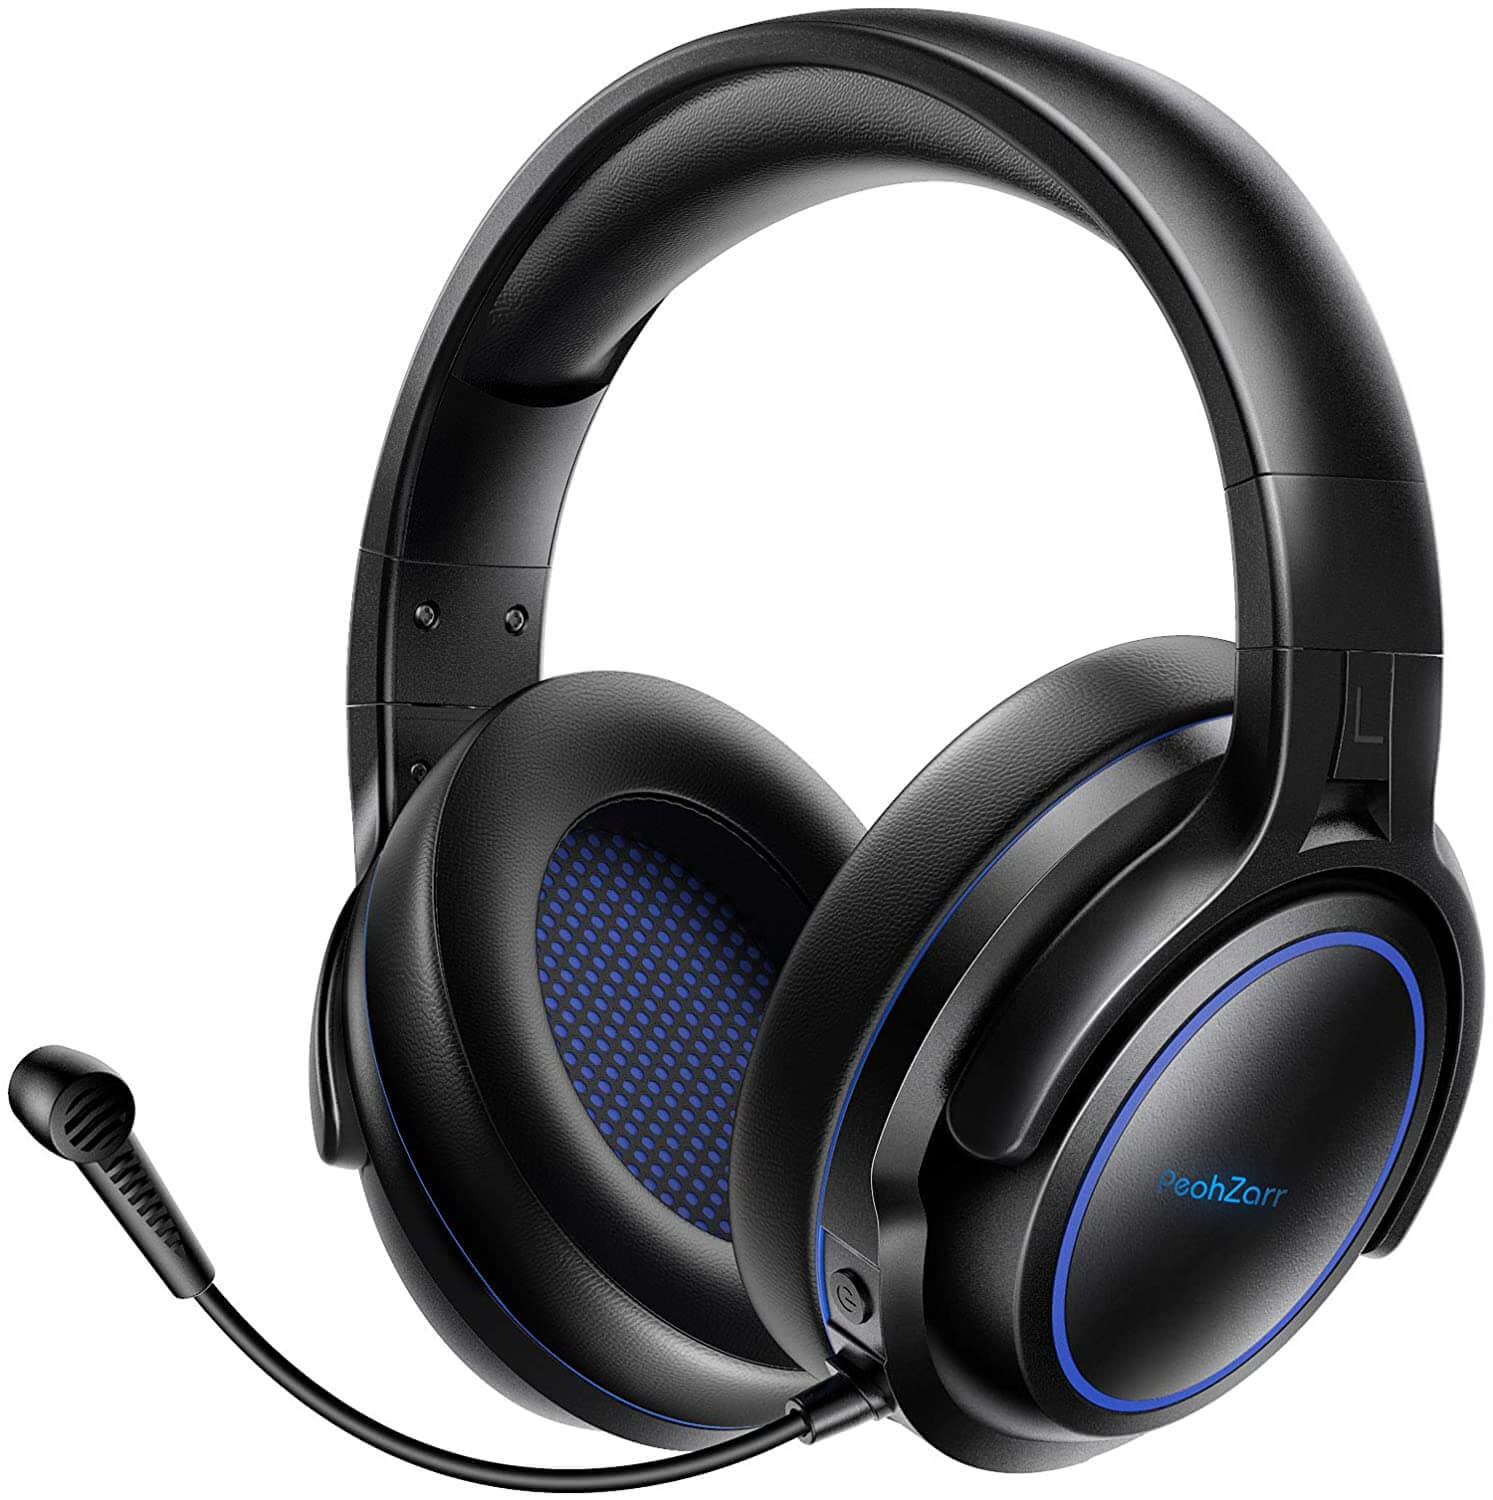 PeohZarr Wireless Gaming Headset